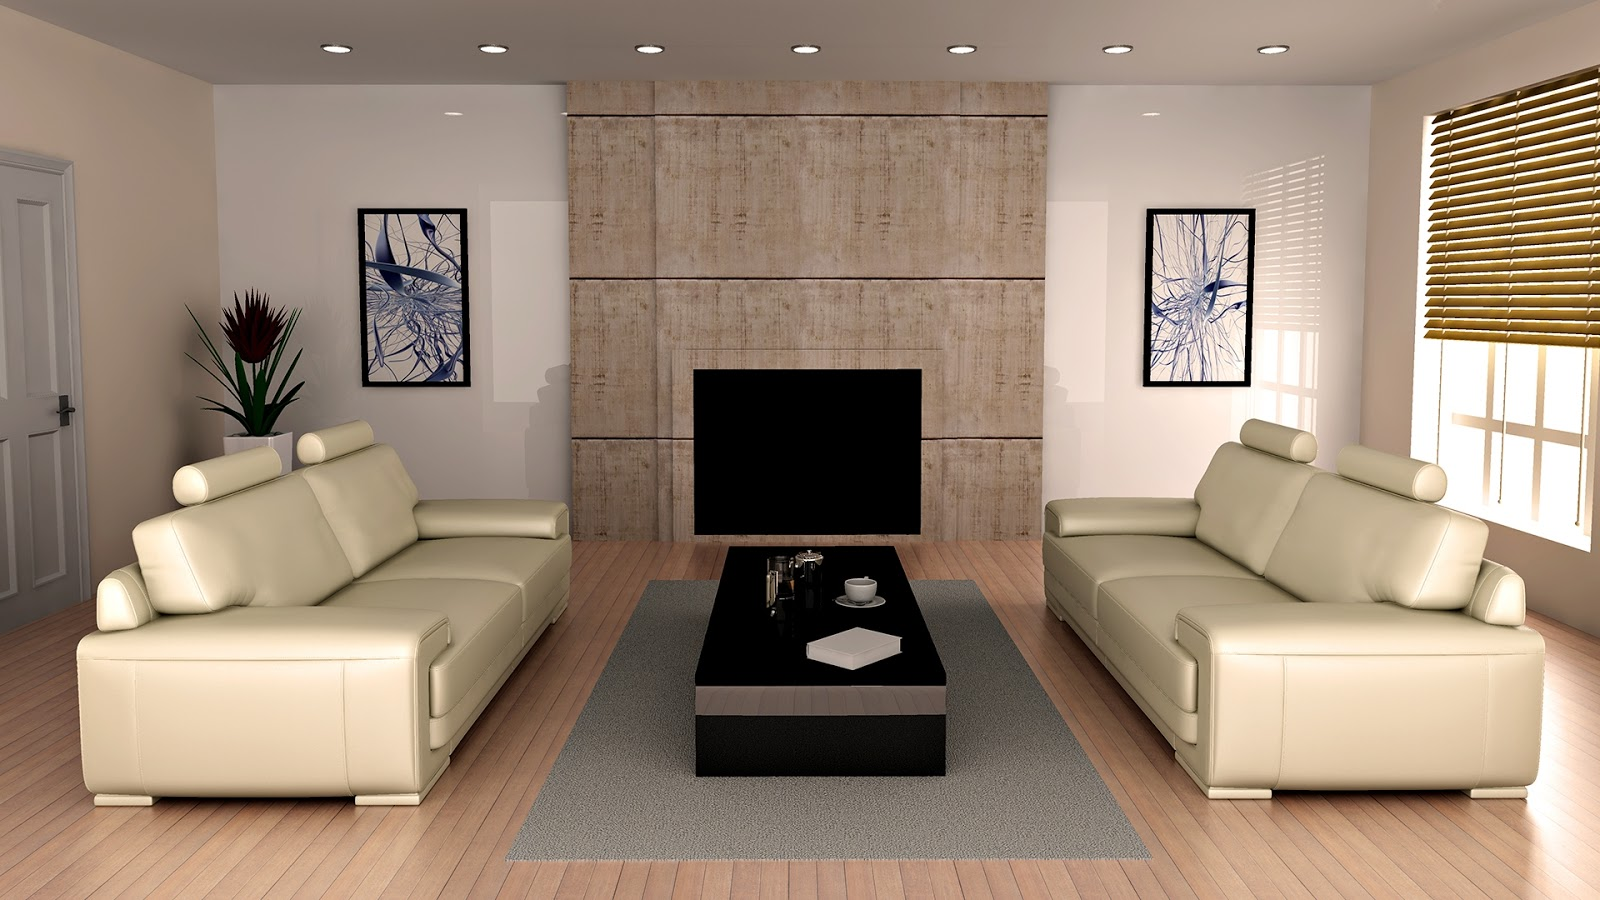 Inspirational of home interiors and garden need some - By design furniture and interior design ...